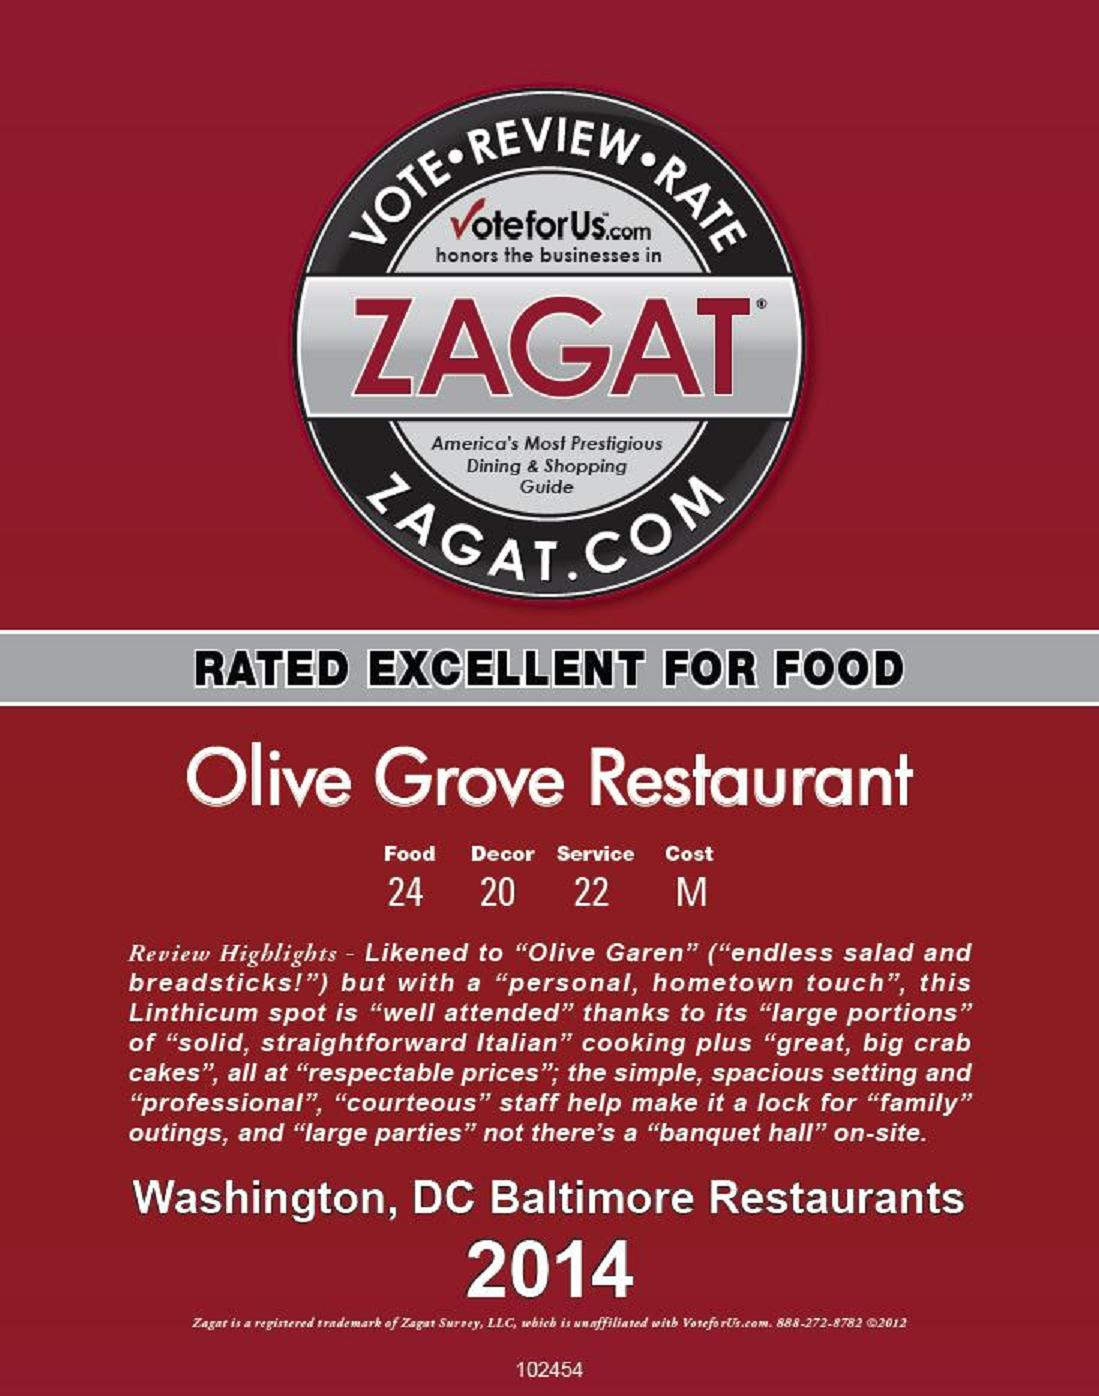 Olive Grove Zagat 2014 Rated Excellent!!